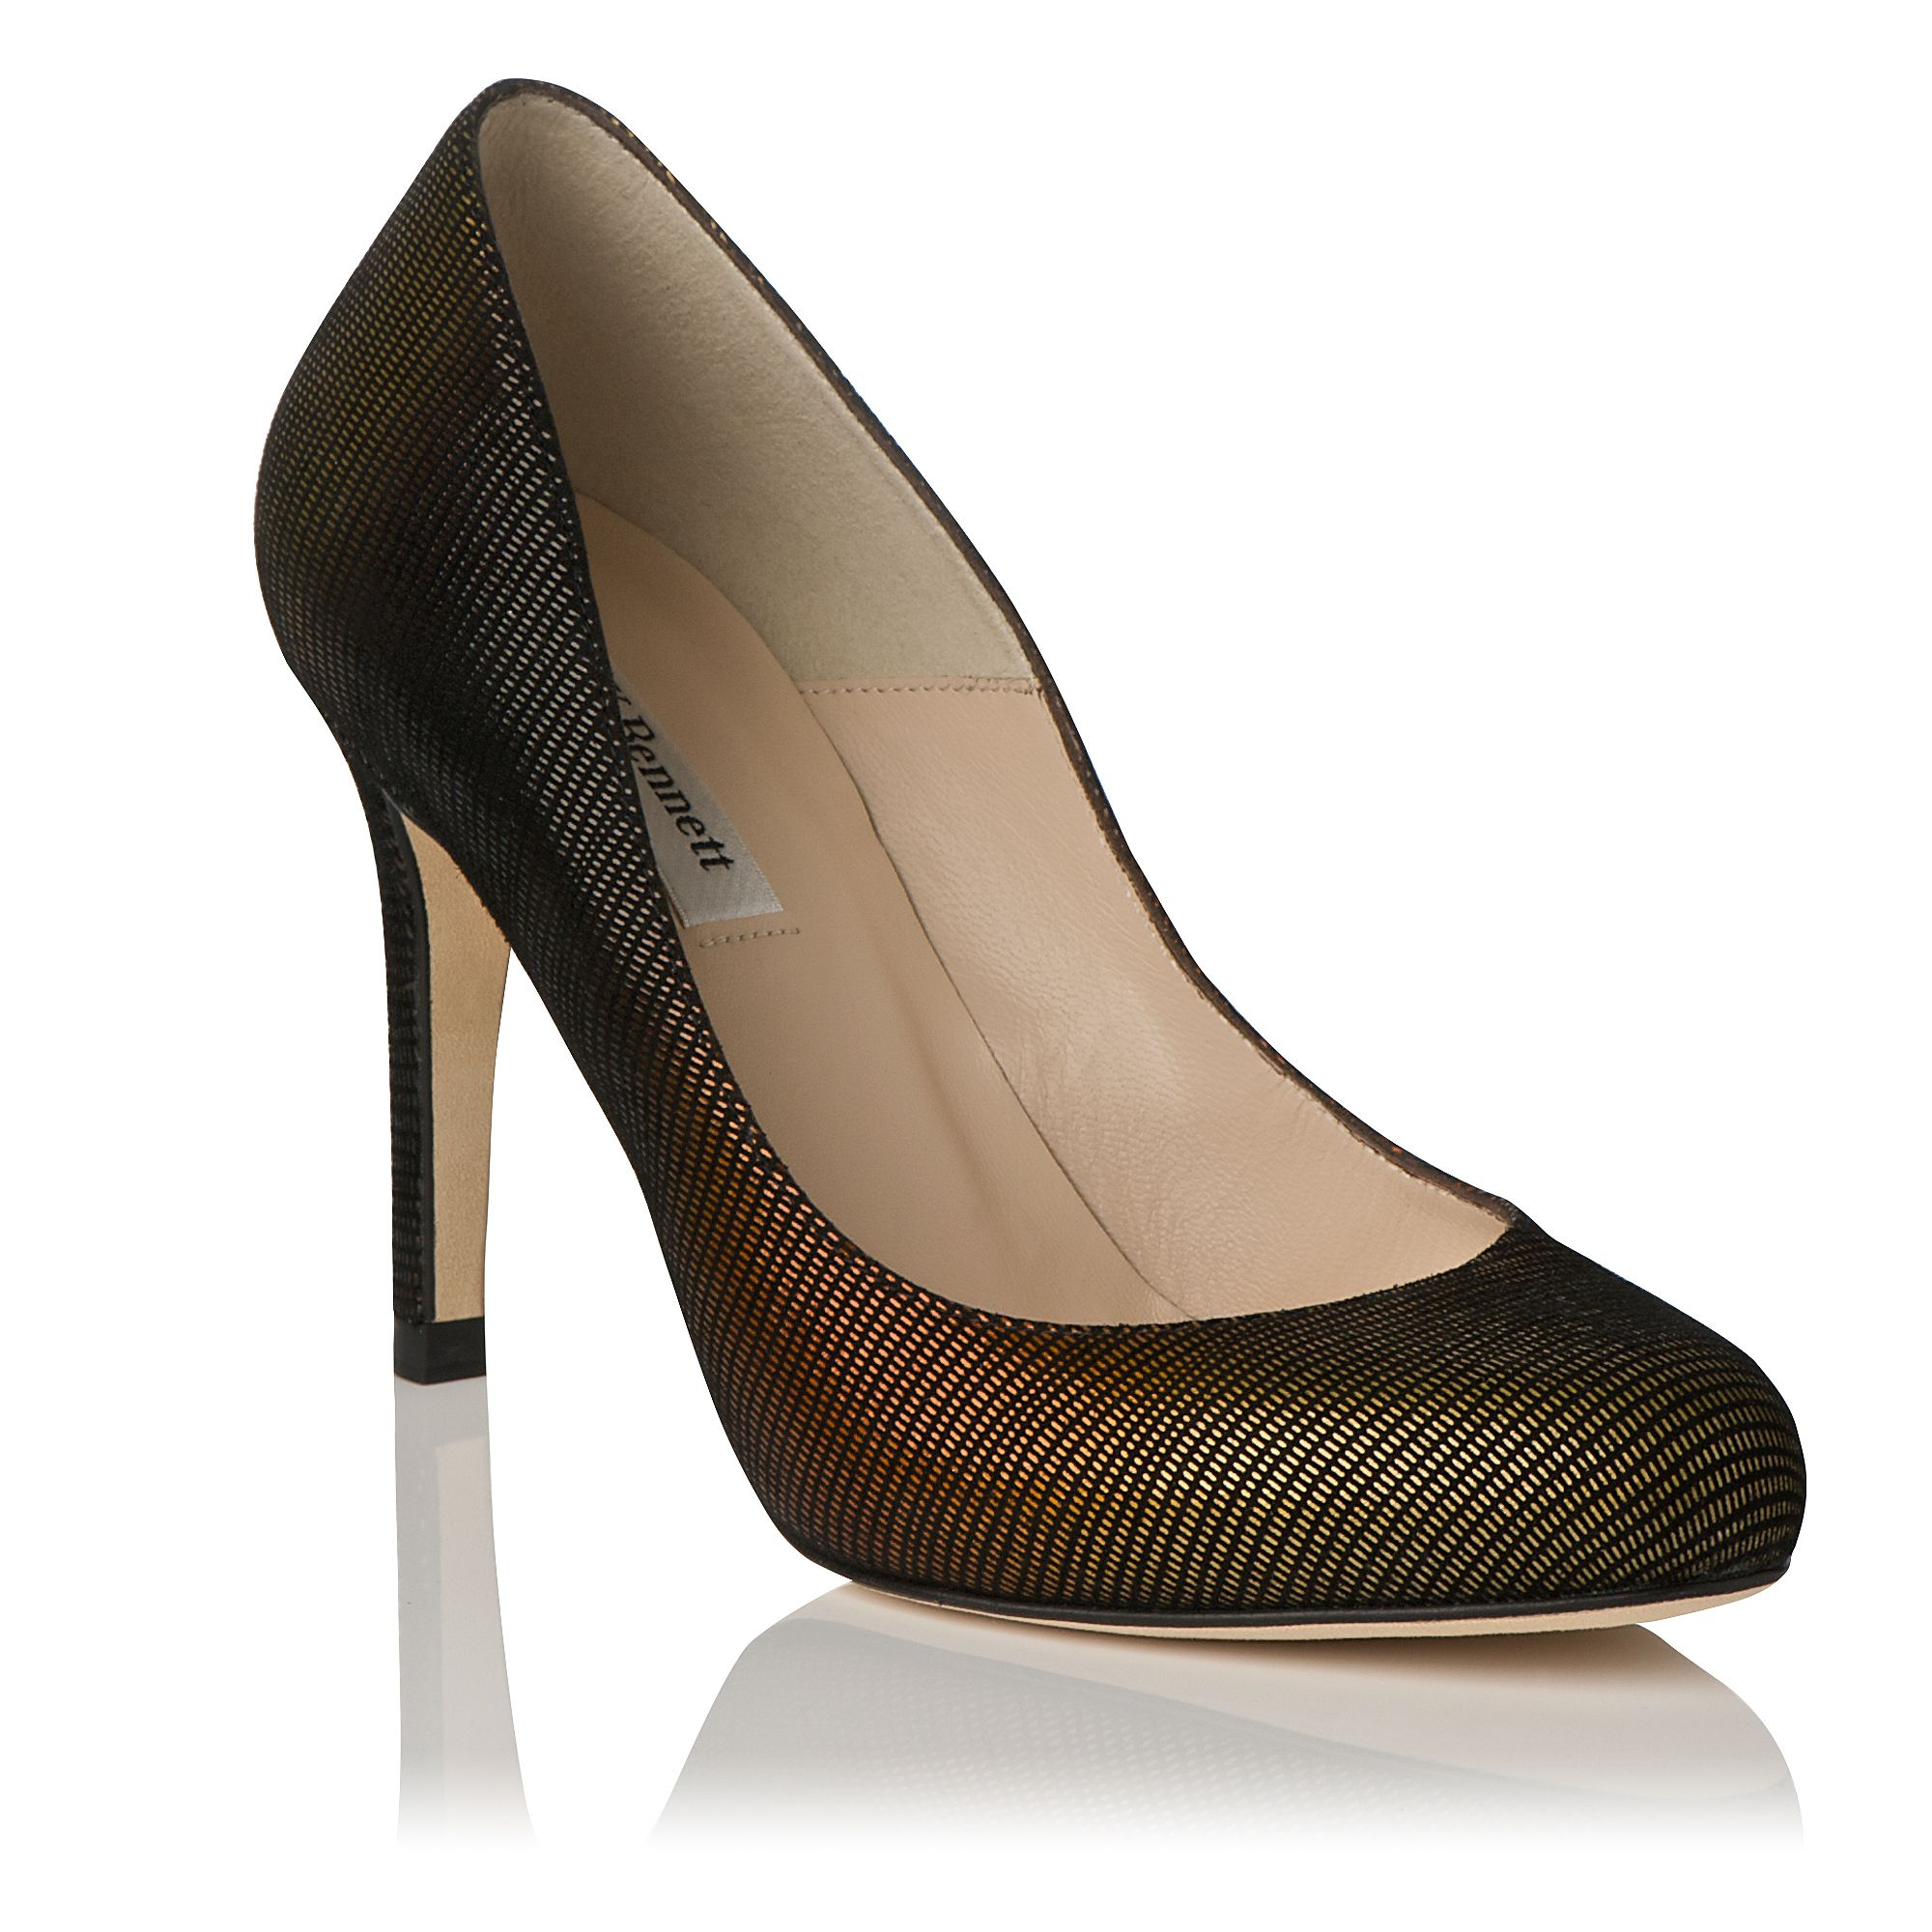 Stila round toe mid heel court shoes